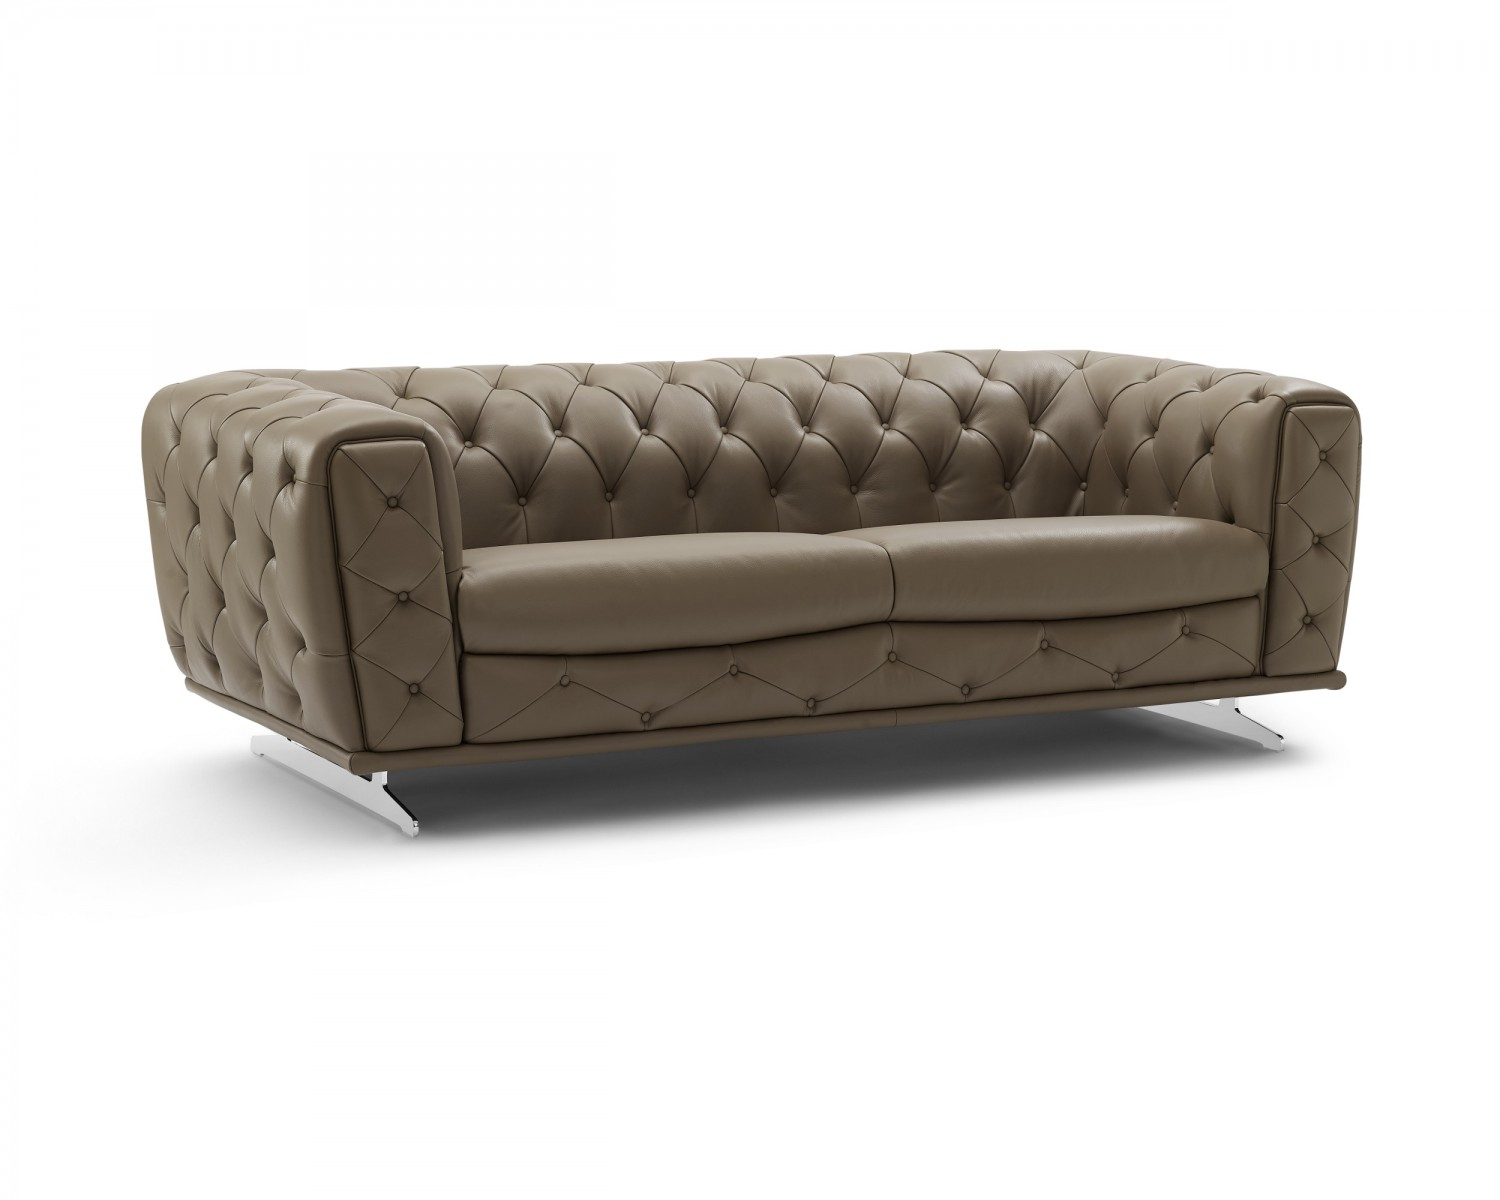 Ellie Contemporary Design Sofa In Clove Leather By Creative